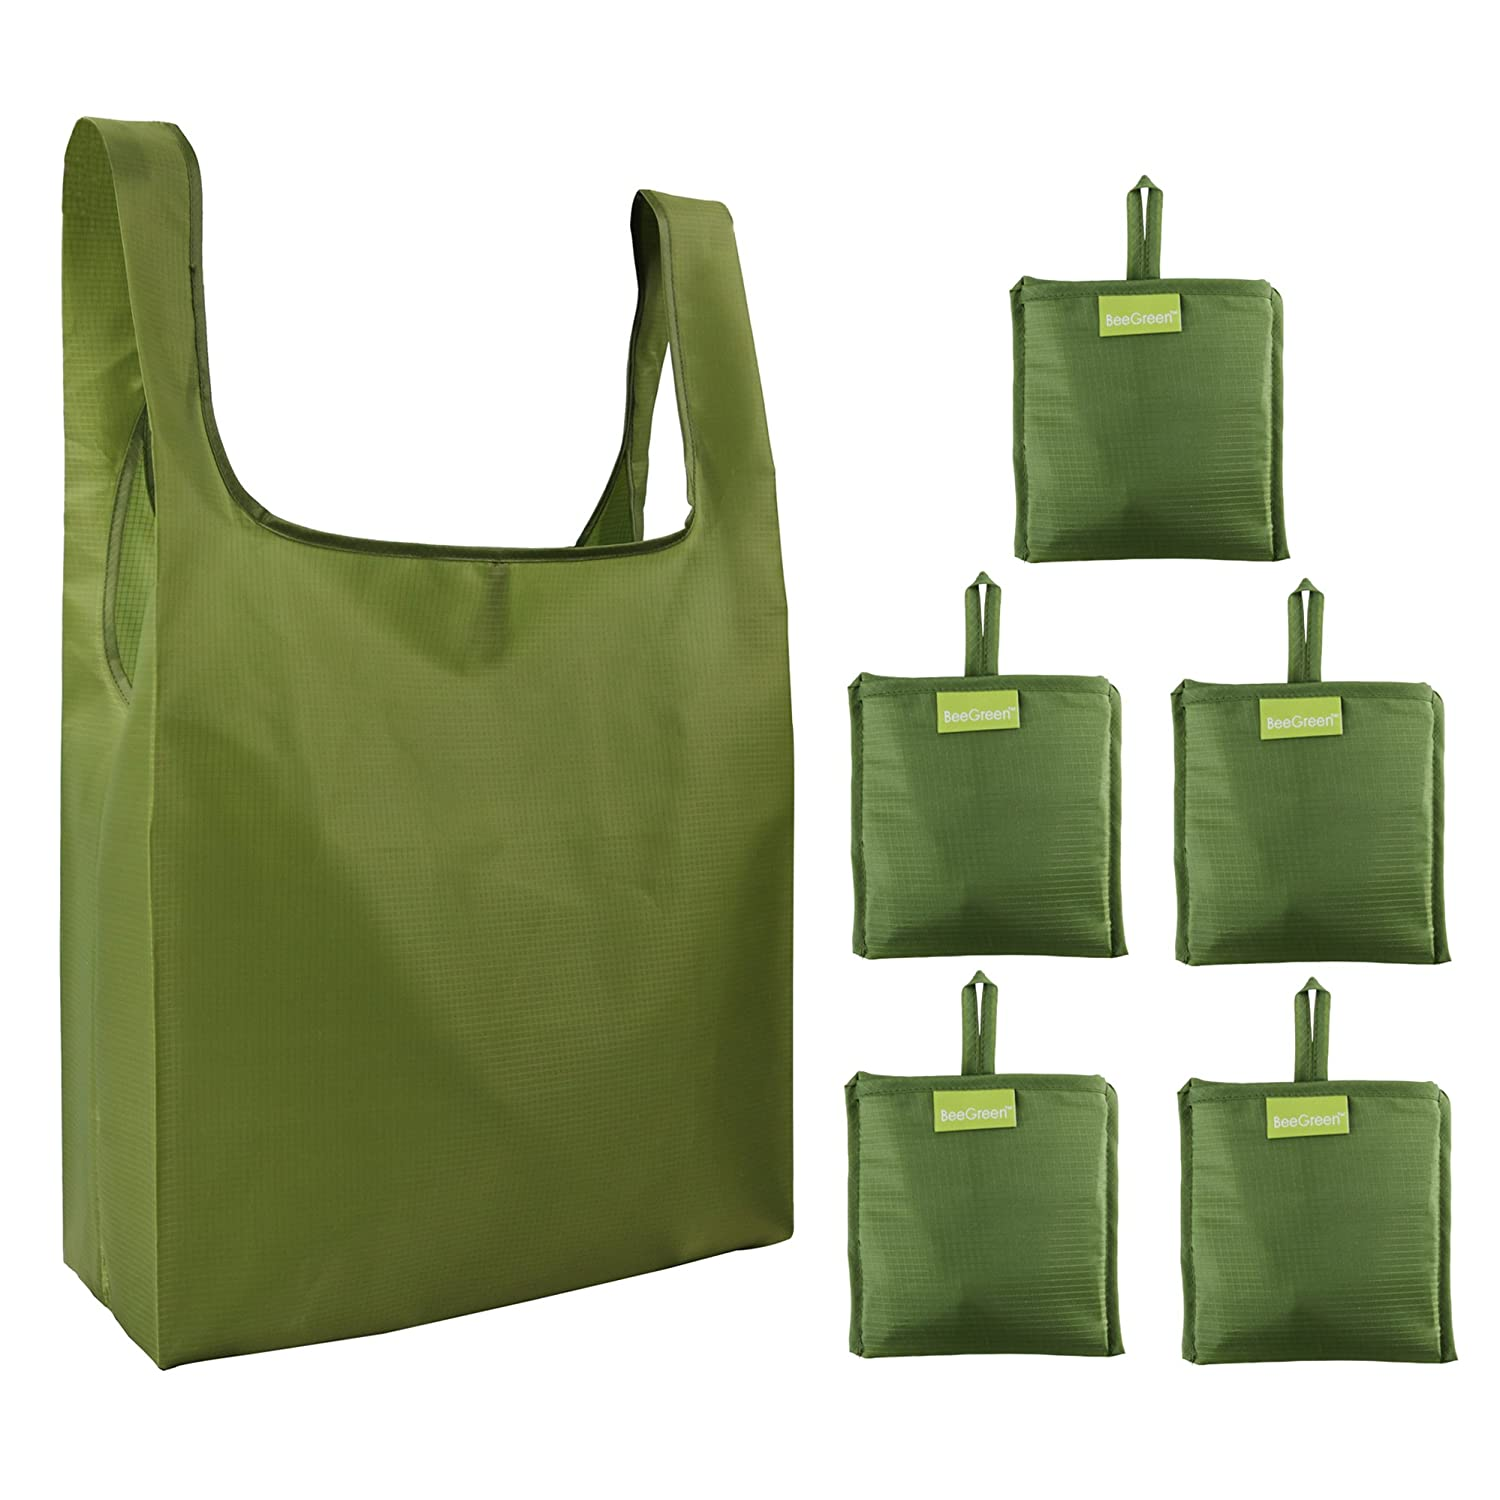 ea1e3b6383 Reusable Grocery Bags Set of 5, Grocery Tote Foldable into Attached ...